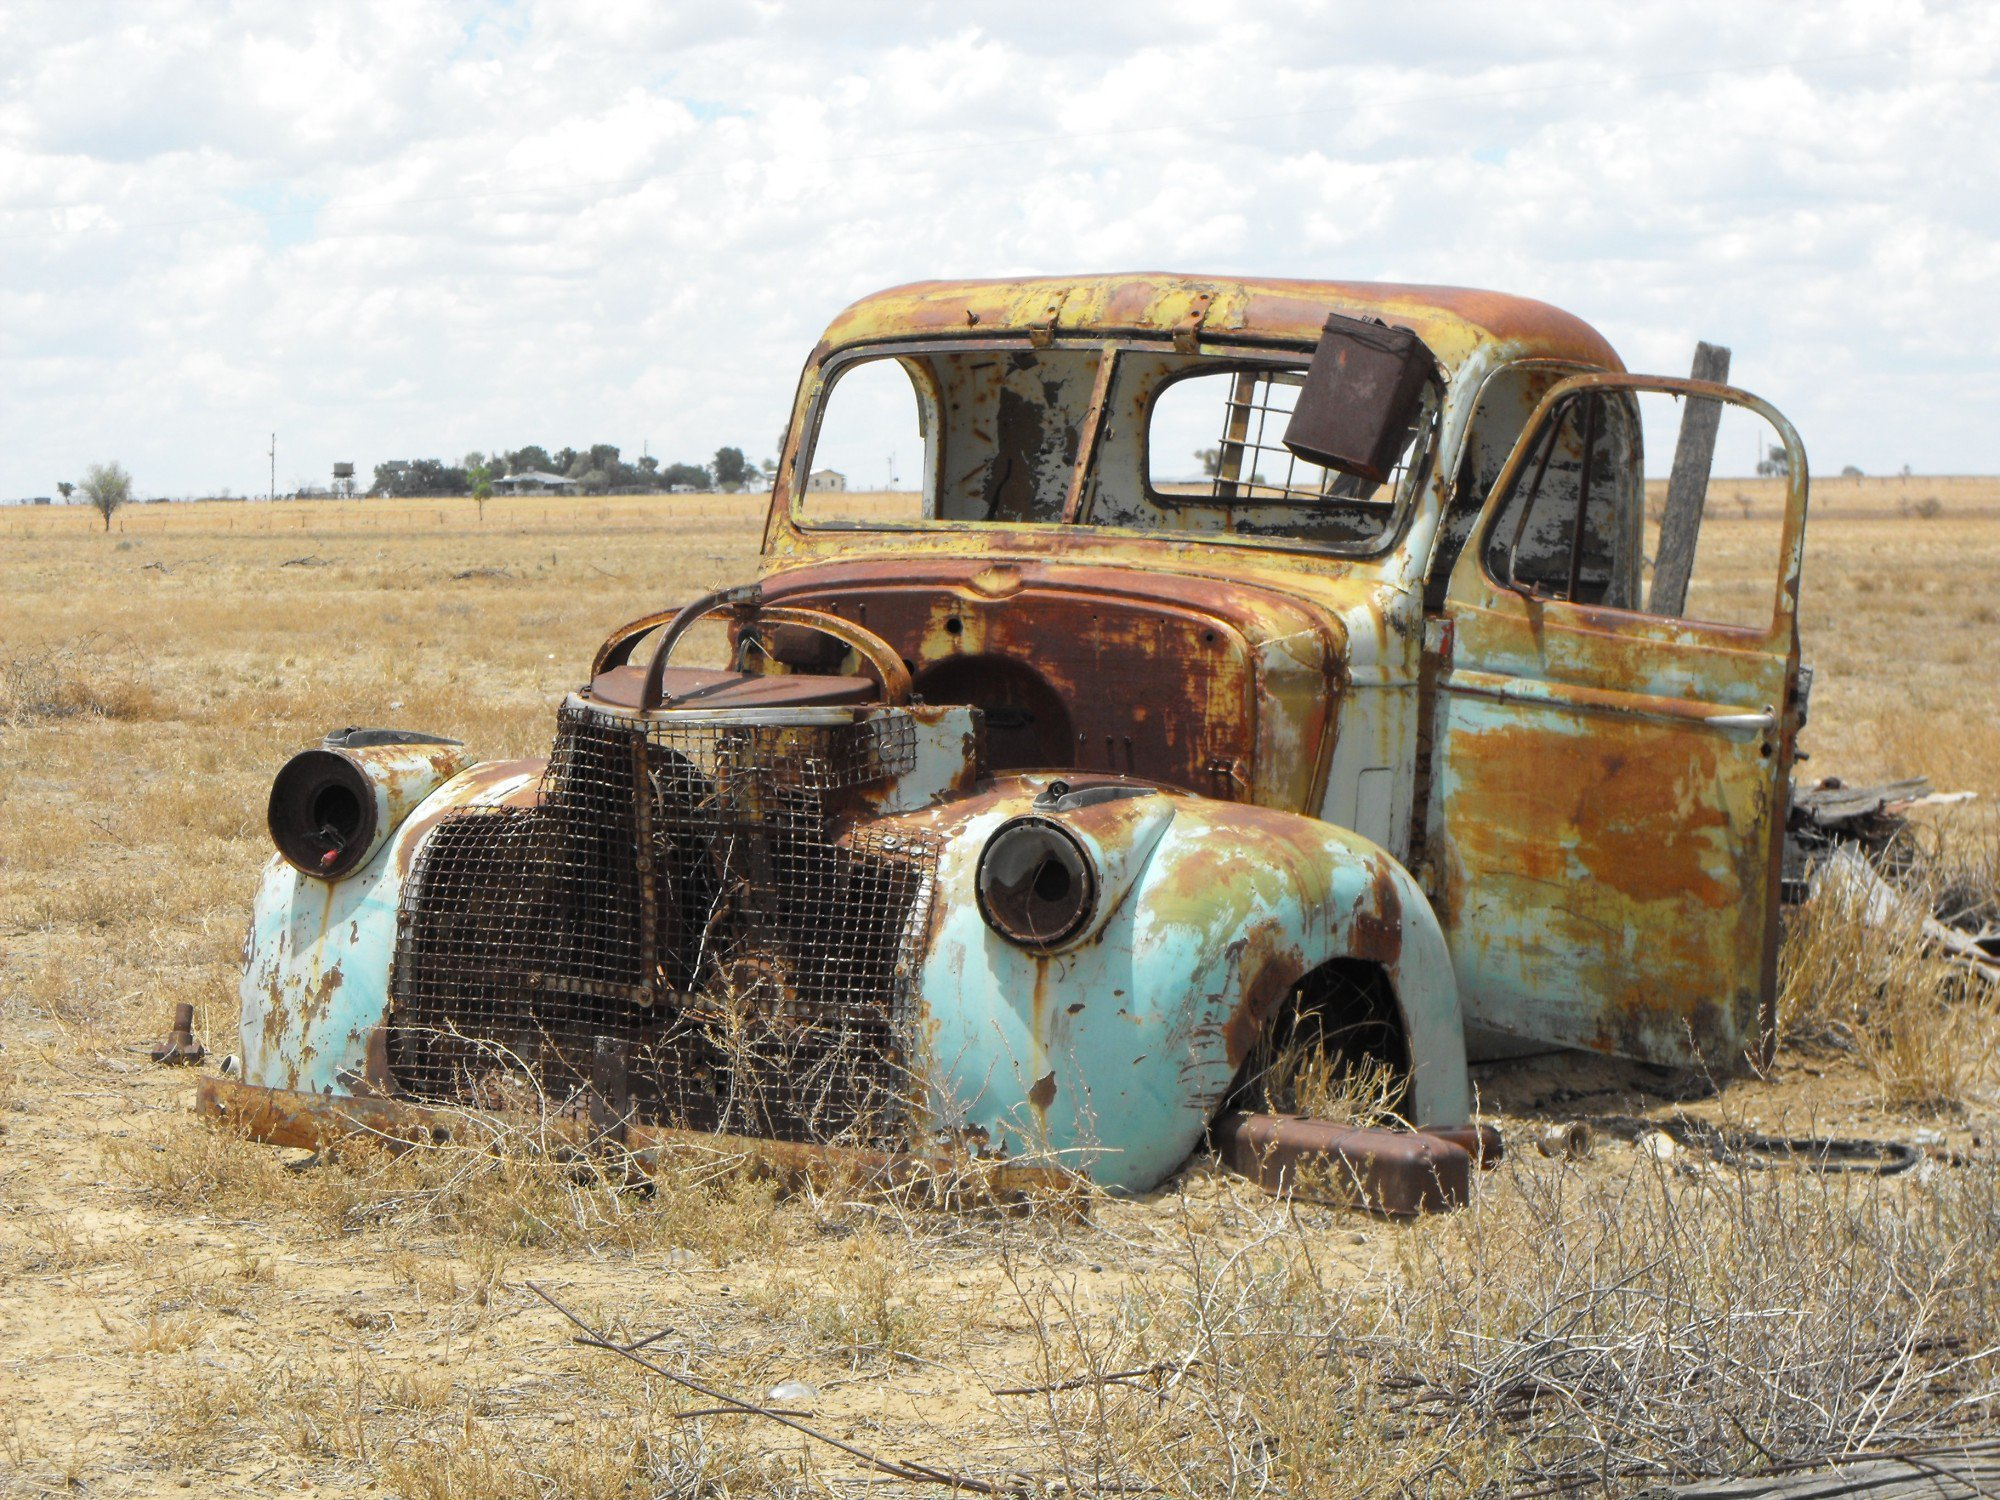 How to Sell a Junk Car: 8 Things to Do Before You Junk Your Car